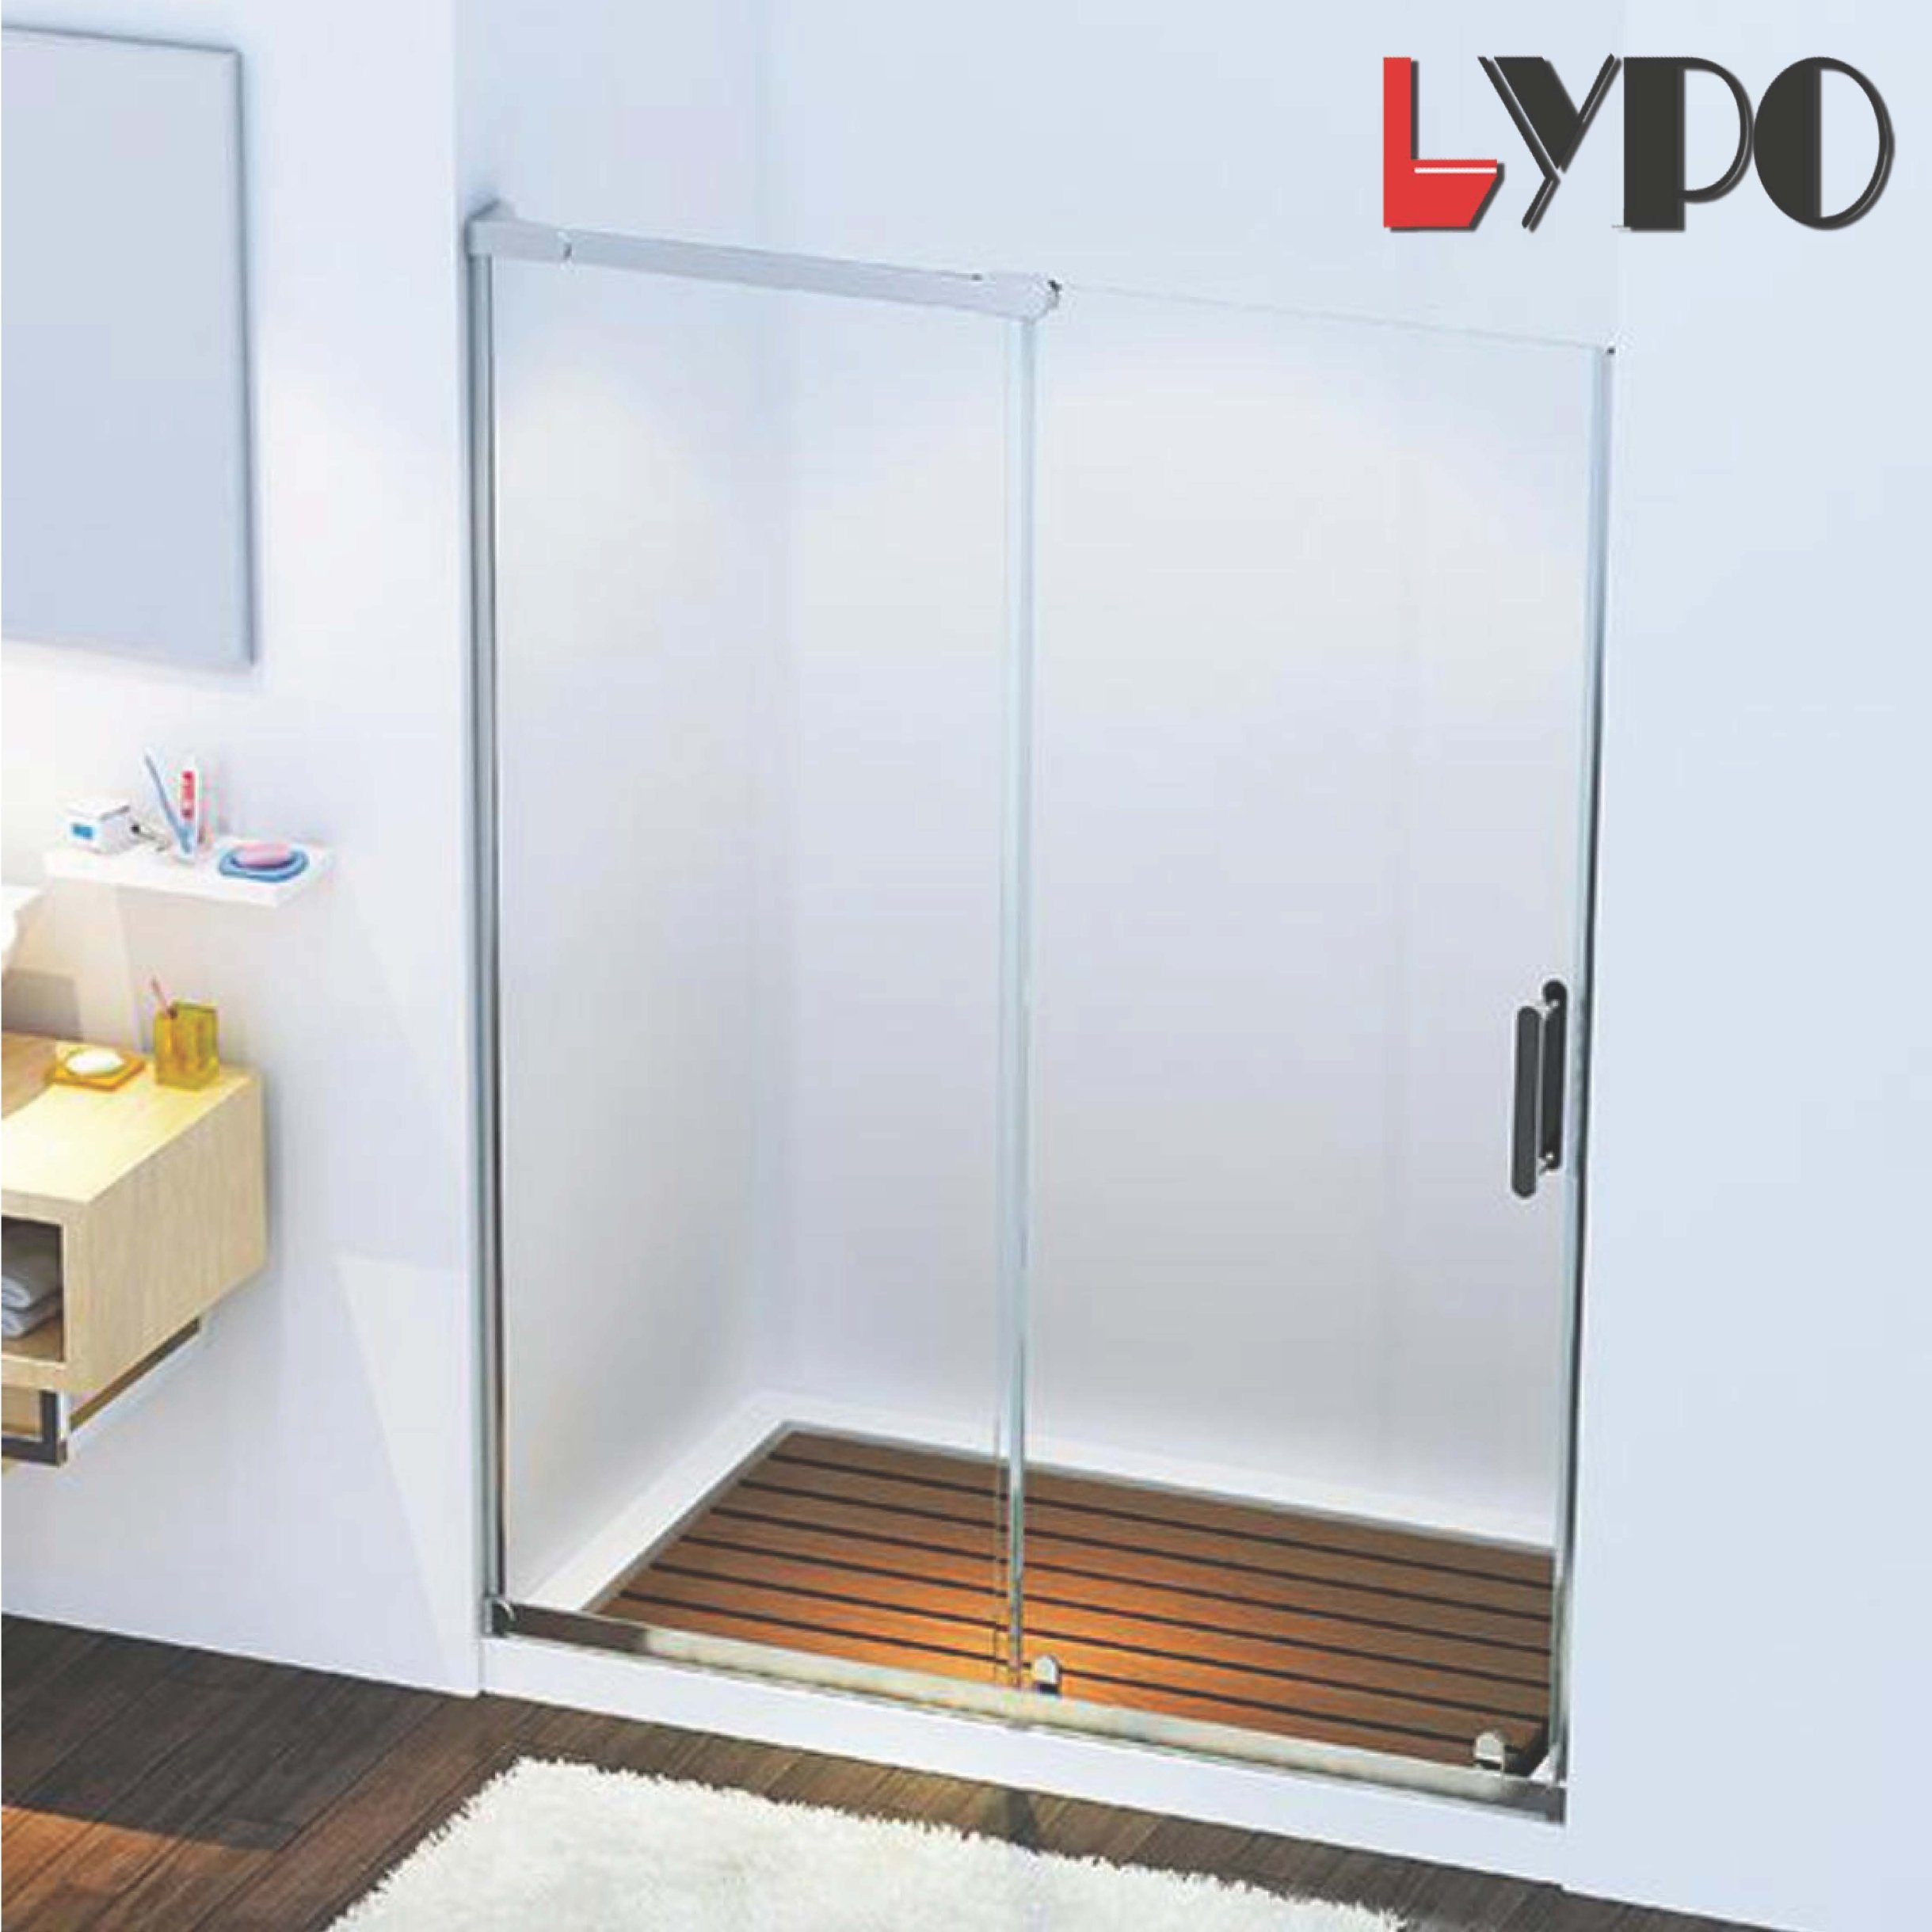 China High Quality Canada Standard Sanitary Ware Tempered Glass ...